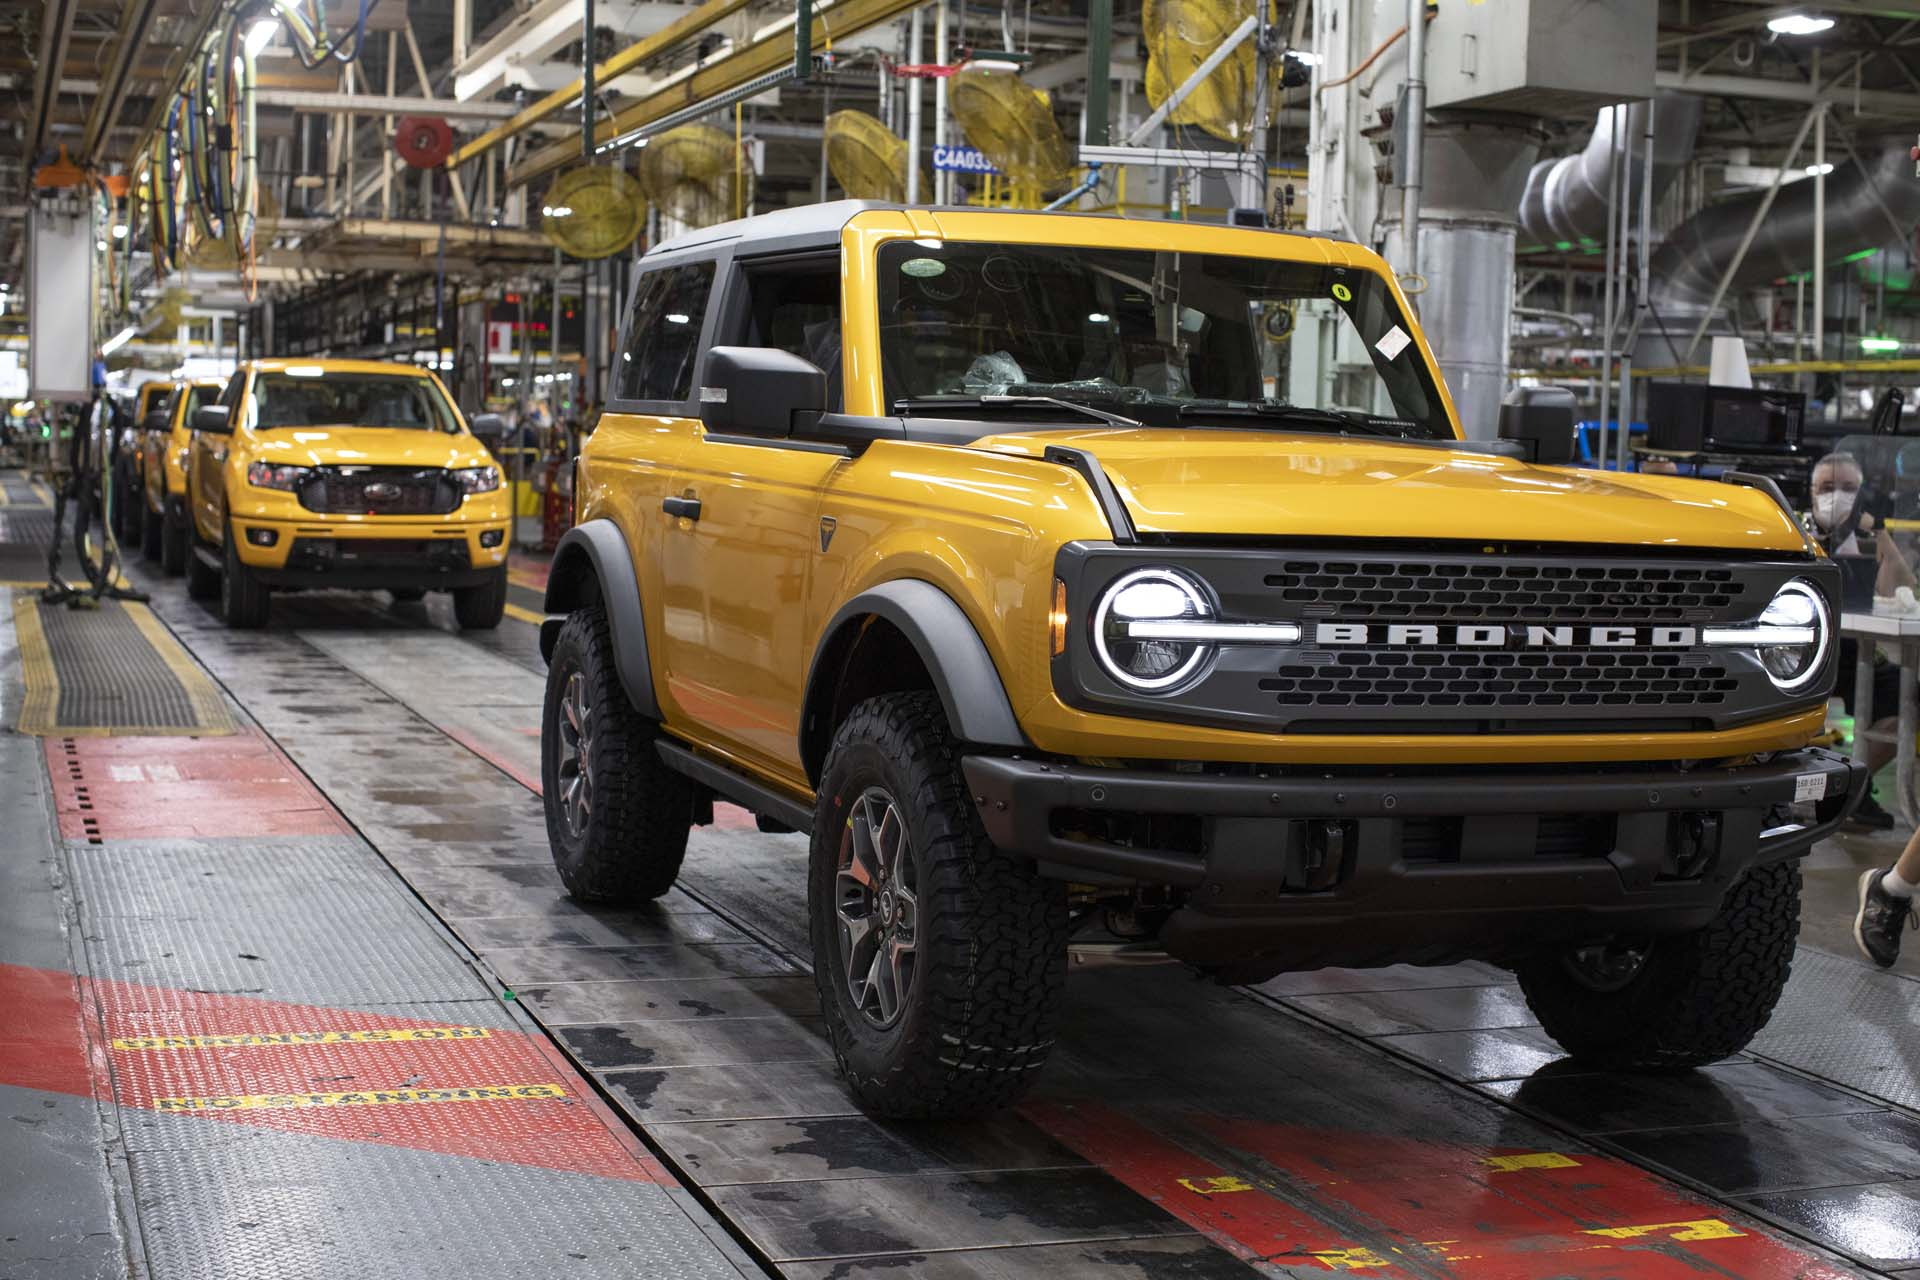 2021 Ford Bronco production is underway